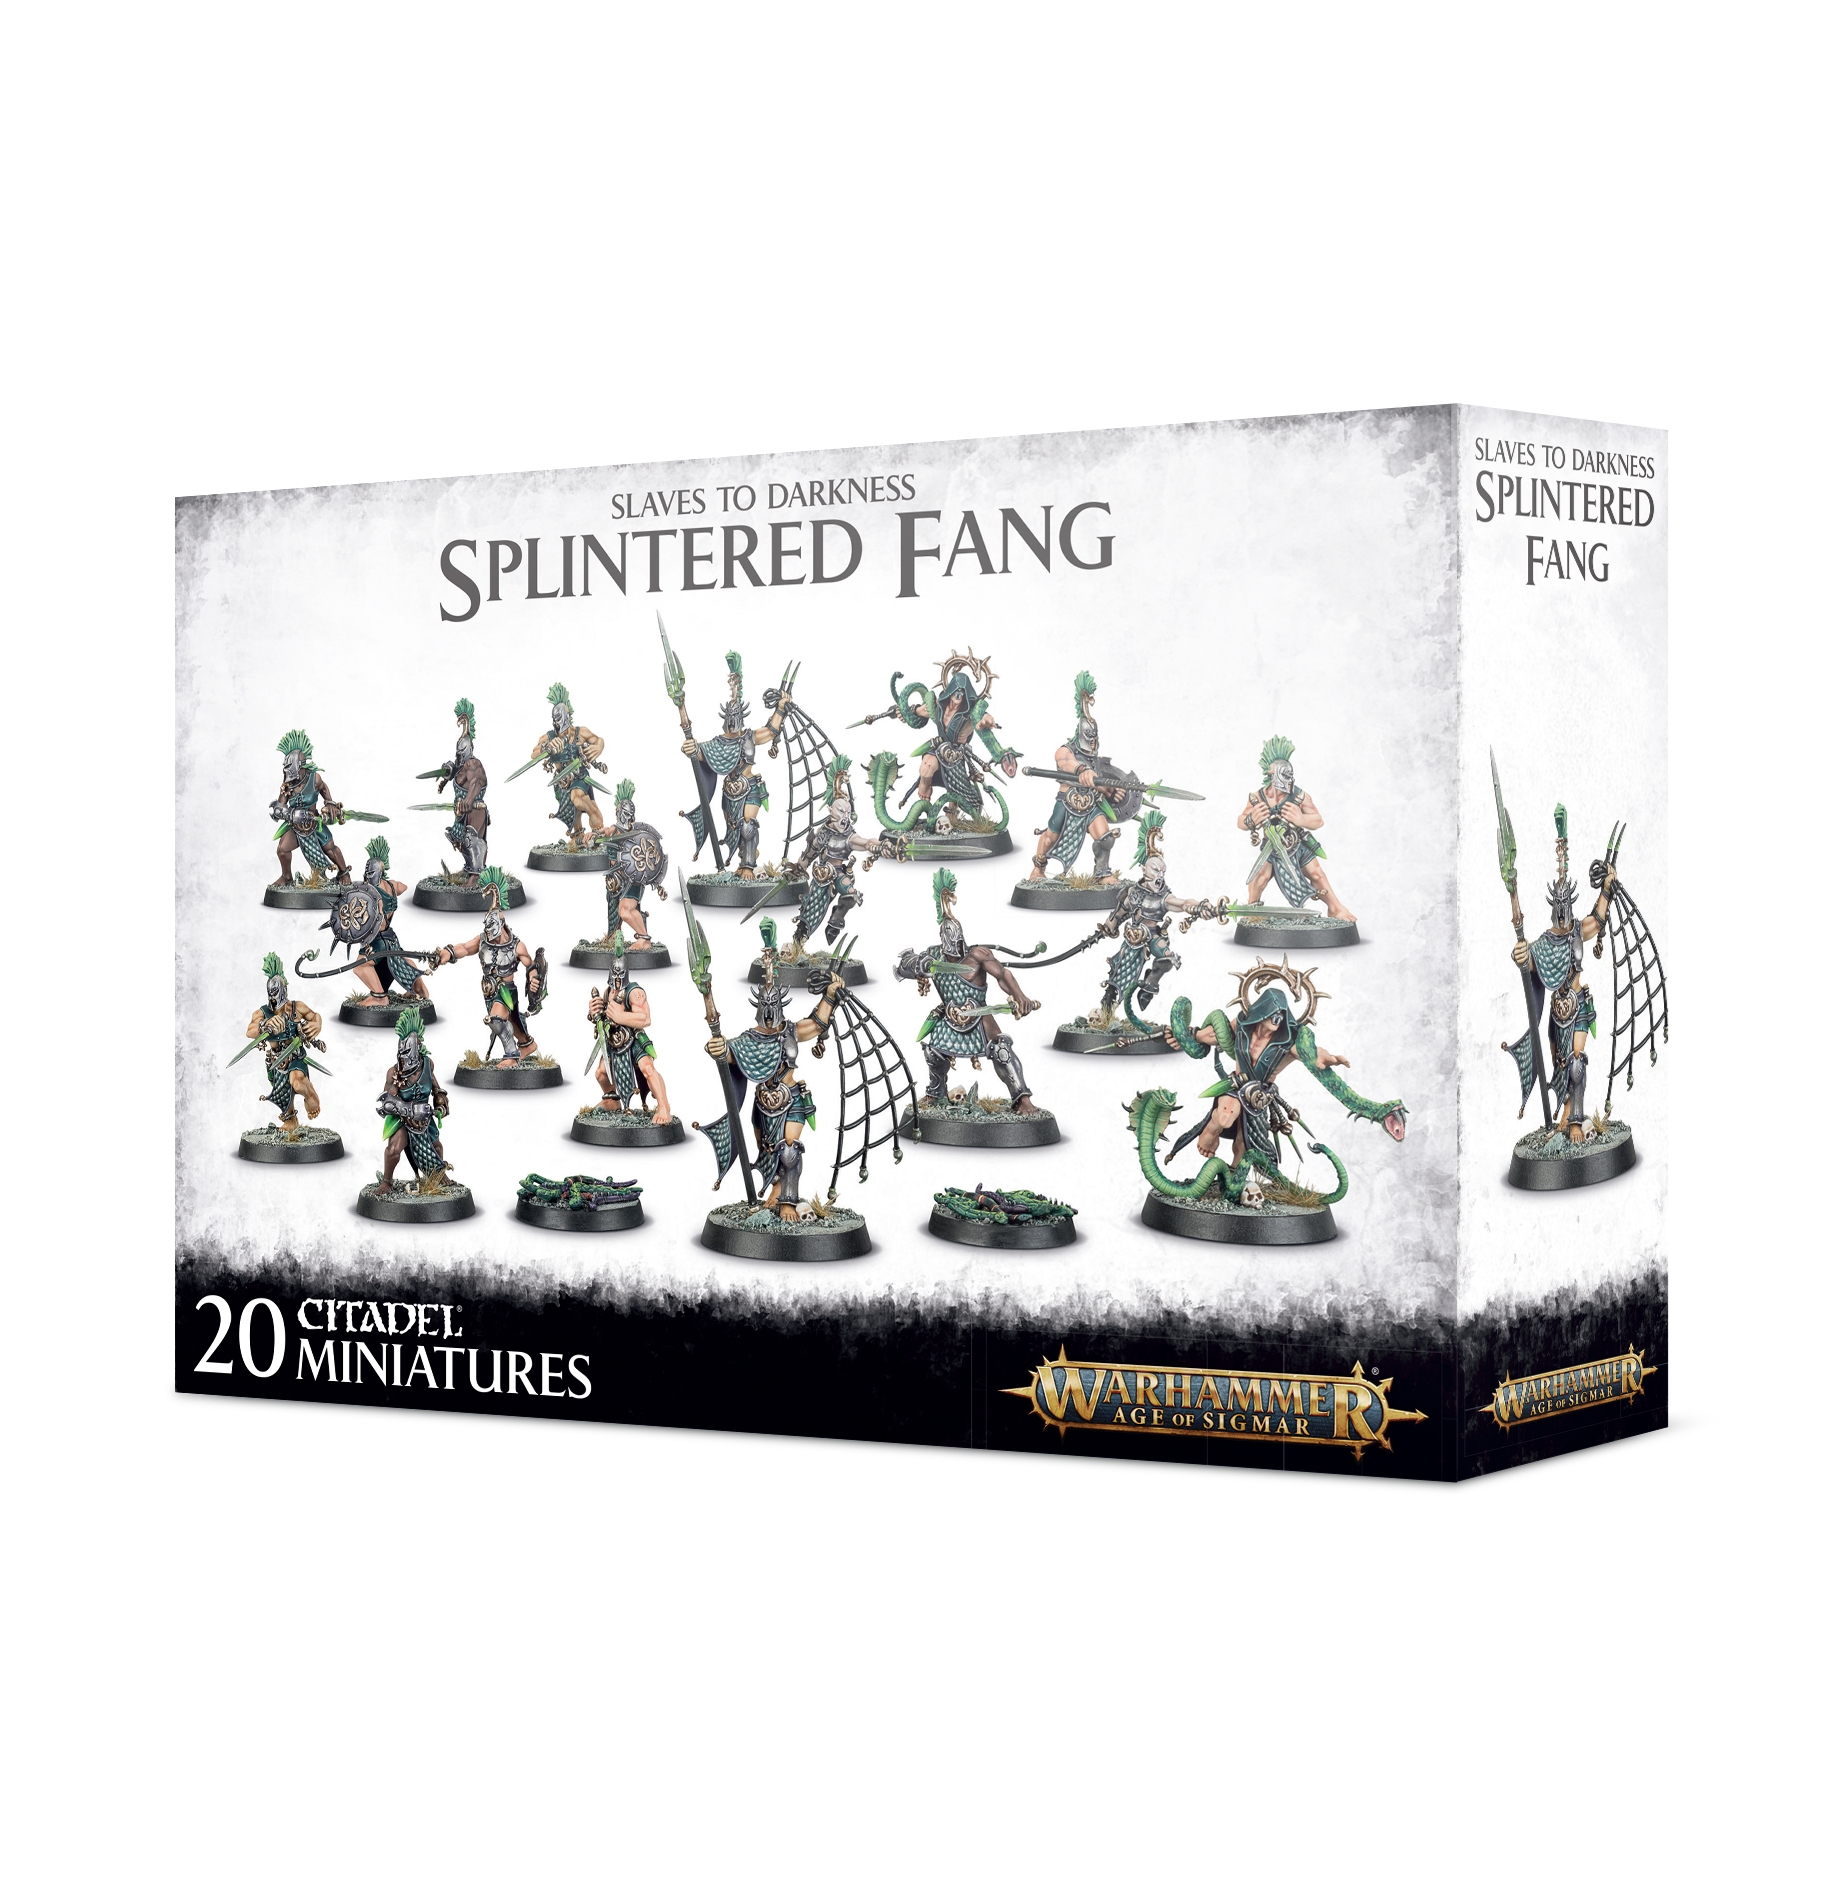 Warhammer Age of Sigmar: Slaves to Darkness: The Splintered Fang